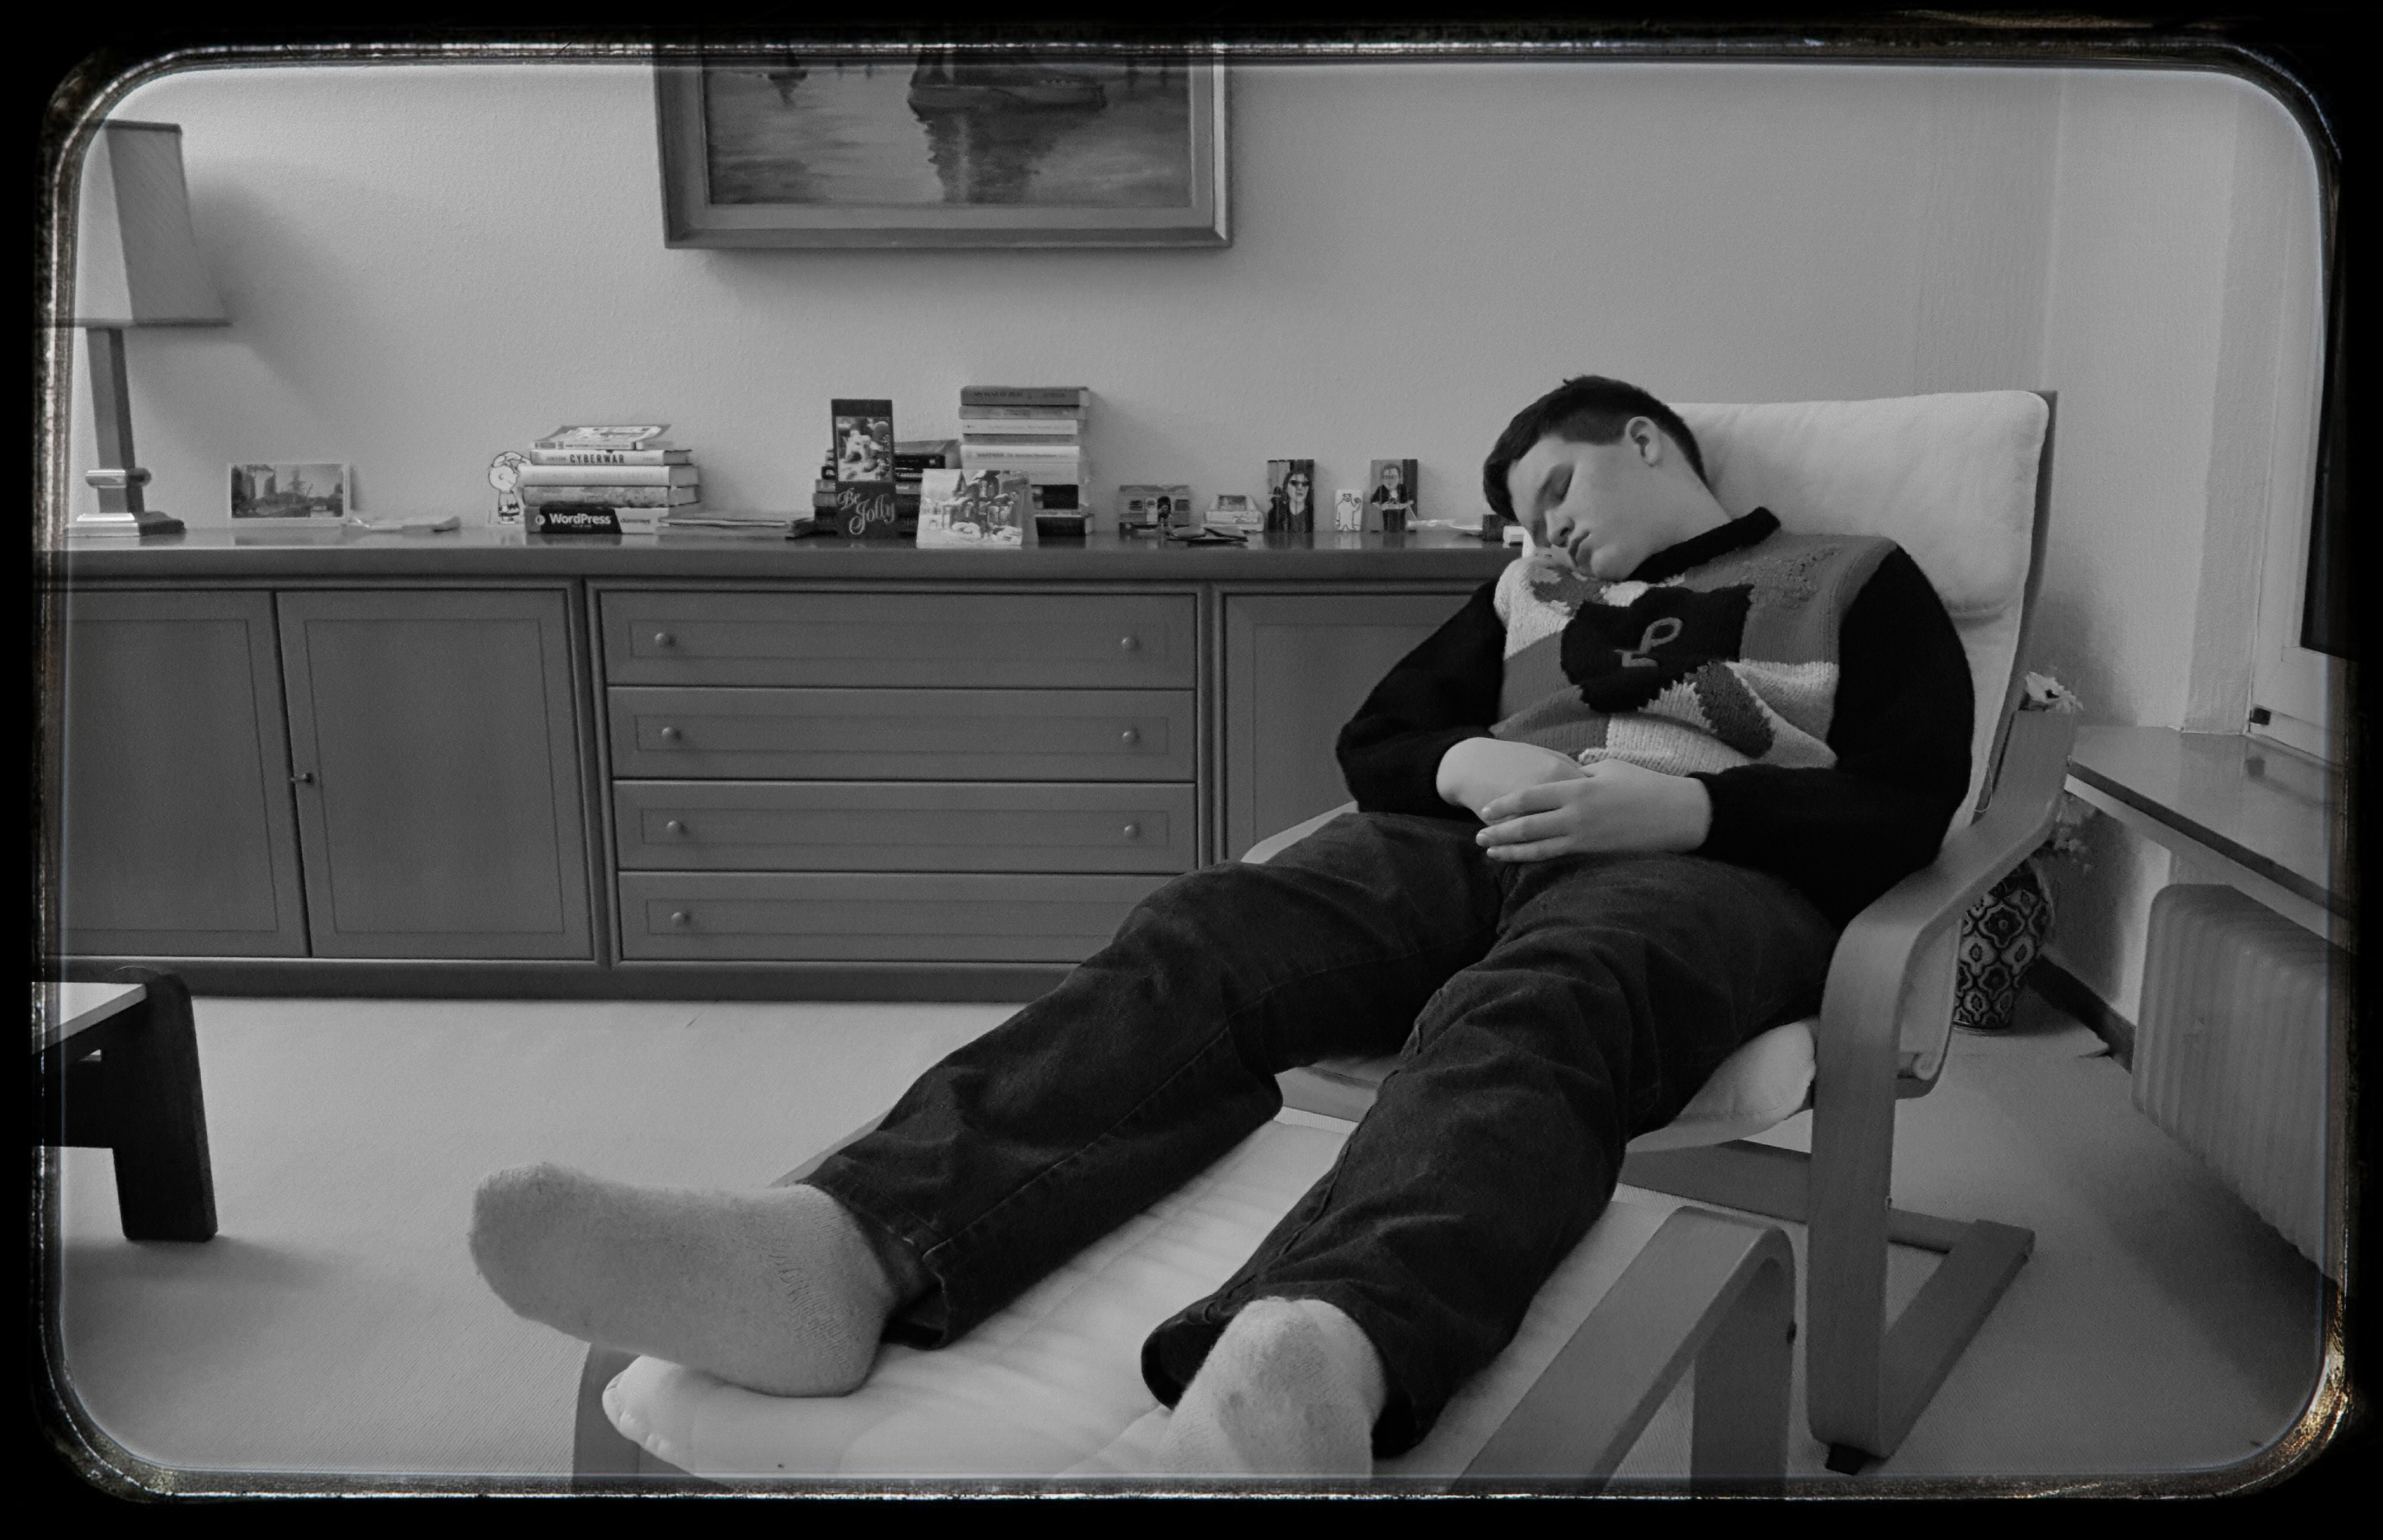 Taller nephew's favorite napping spot. He couldn't stay awake in that chair.